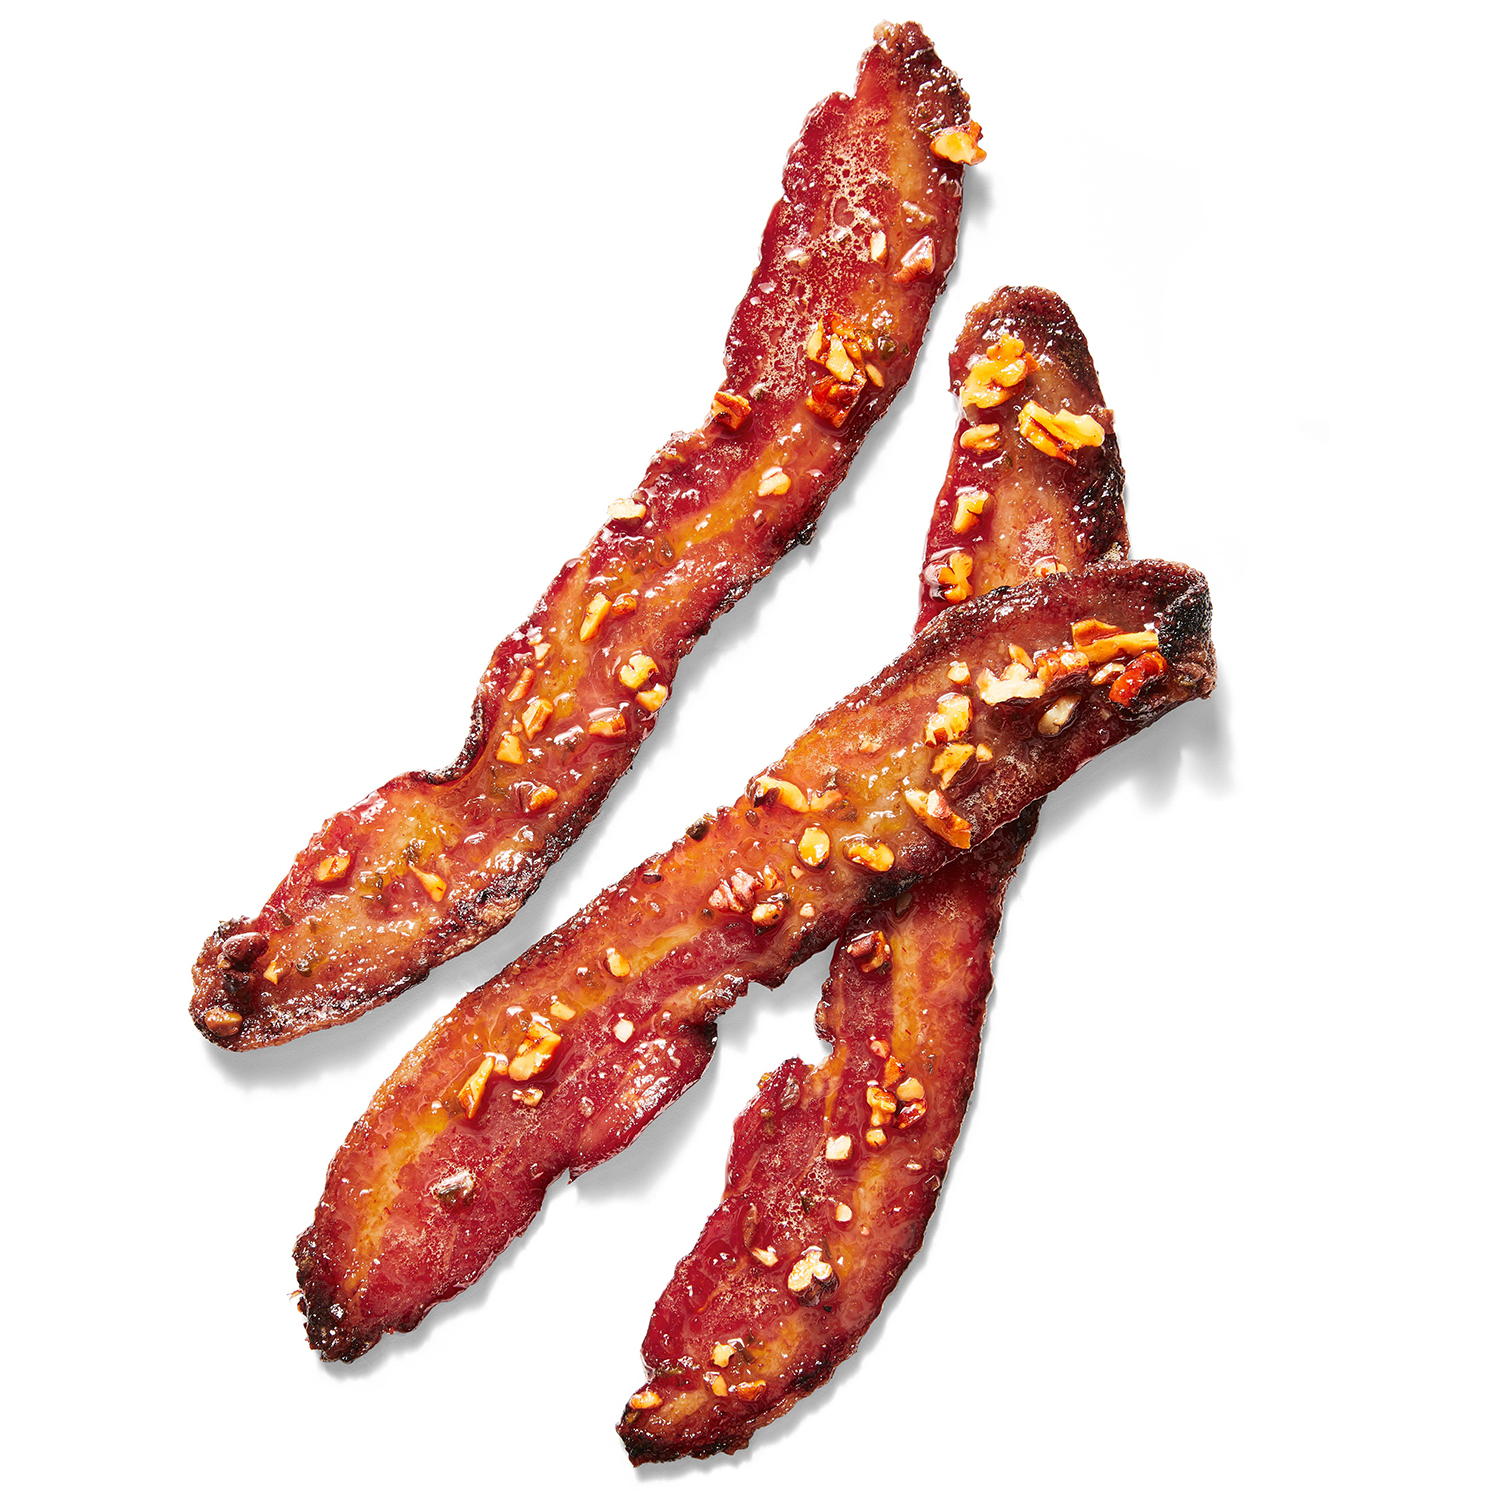 Southern Candied Bacon